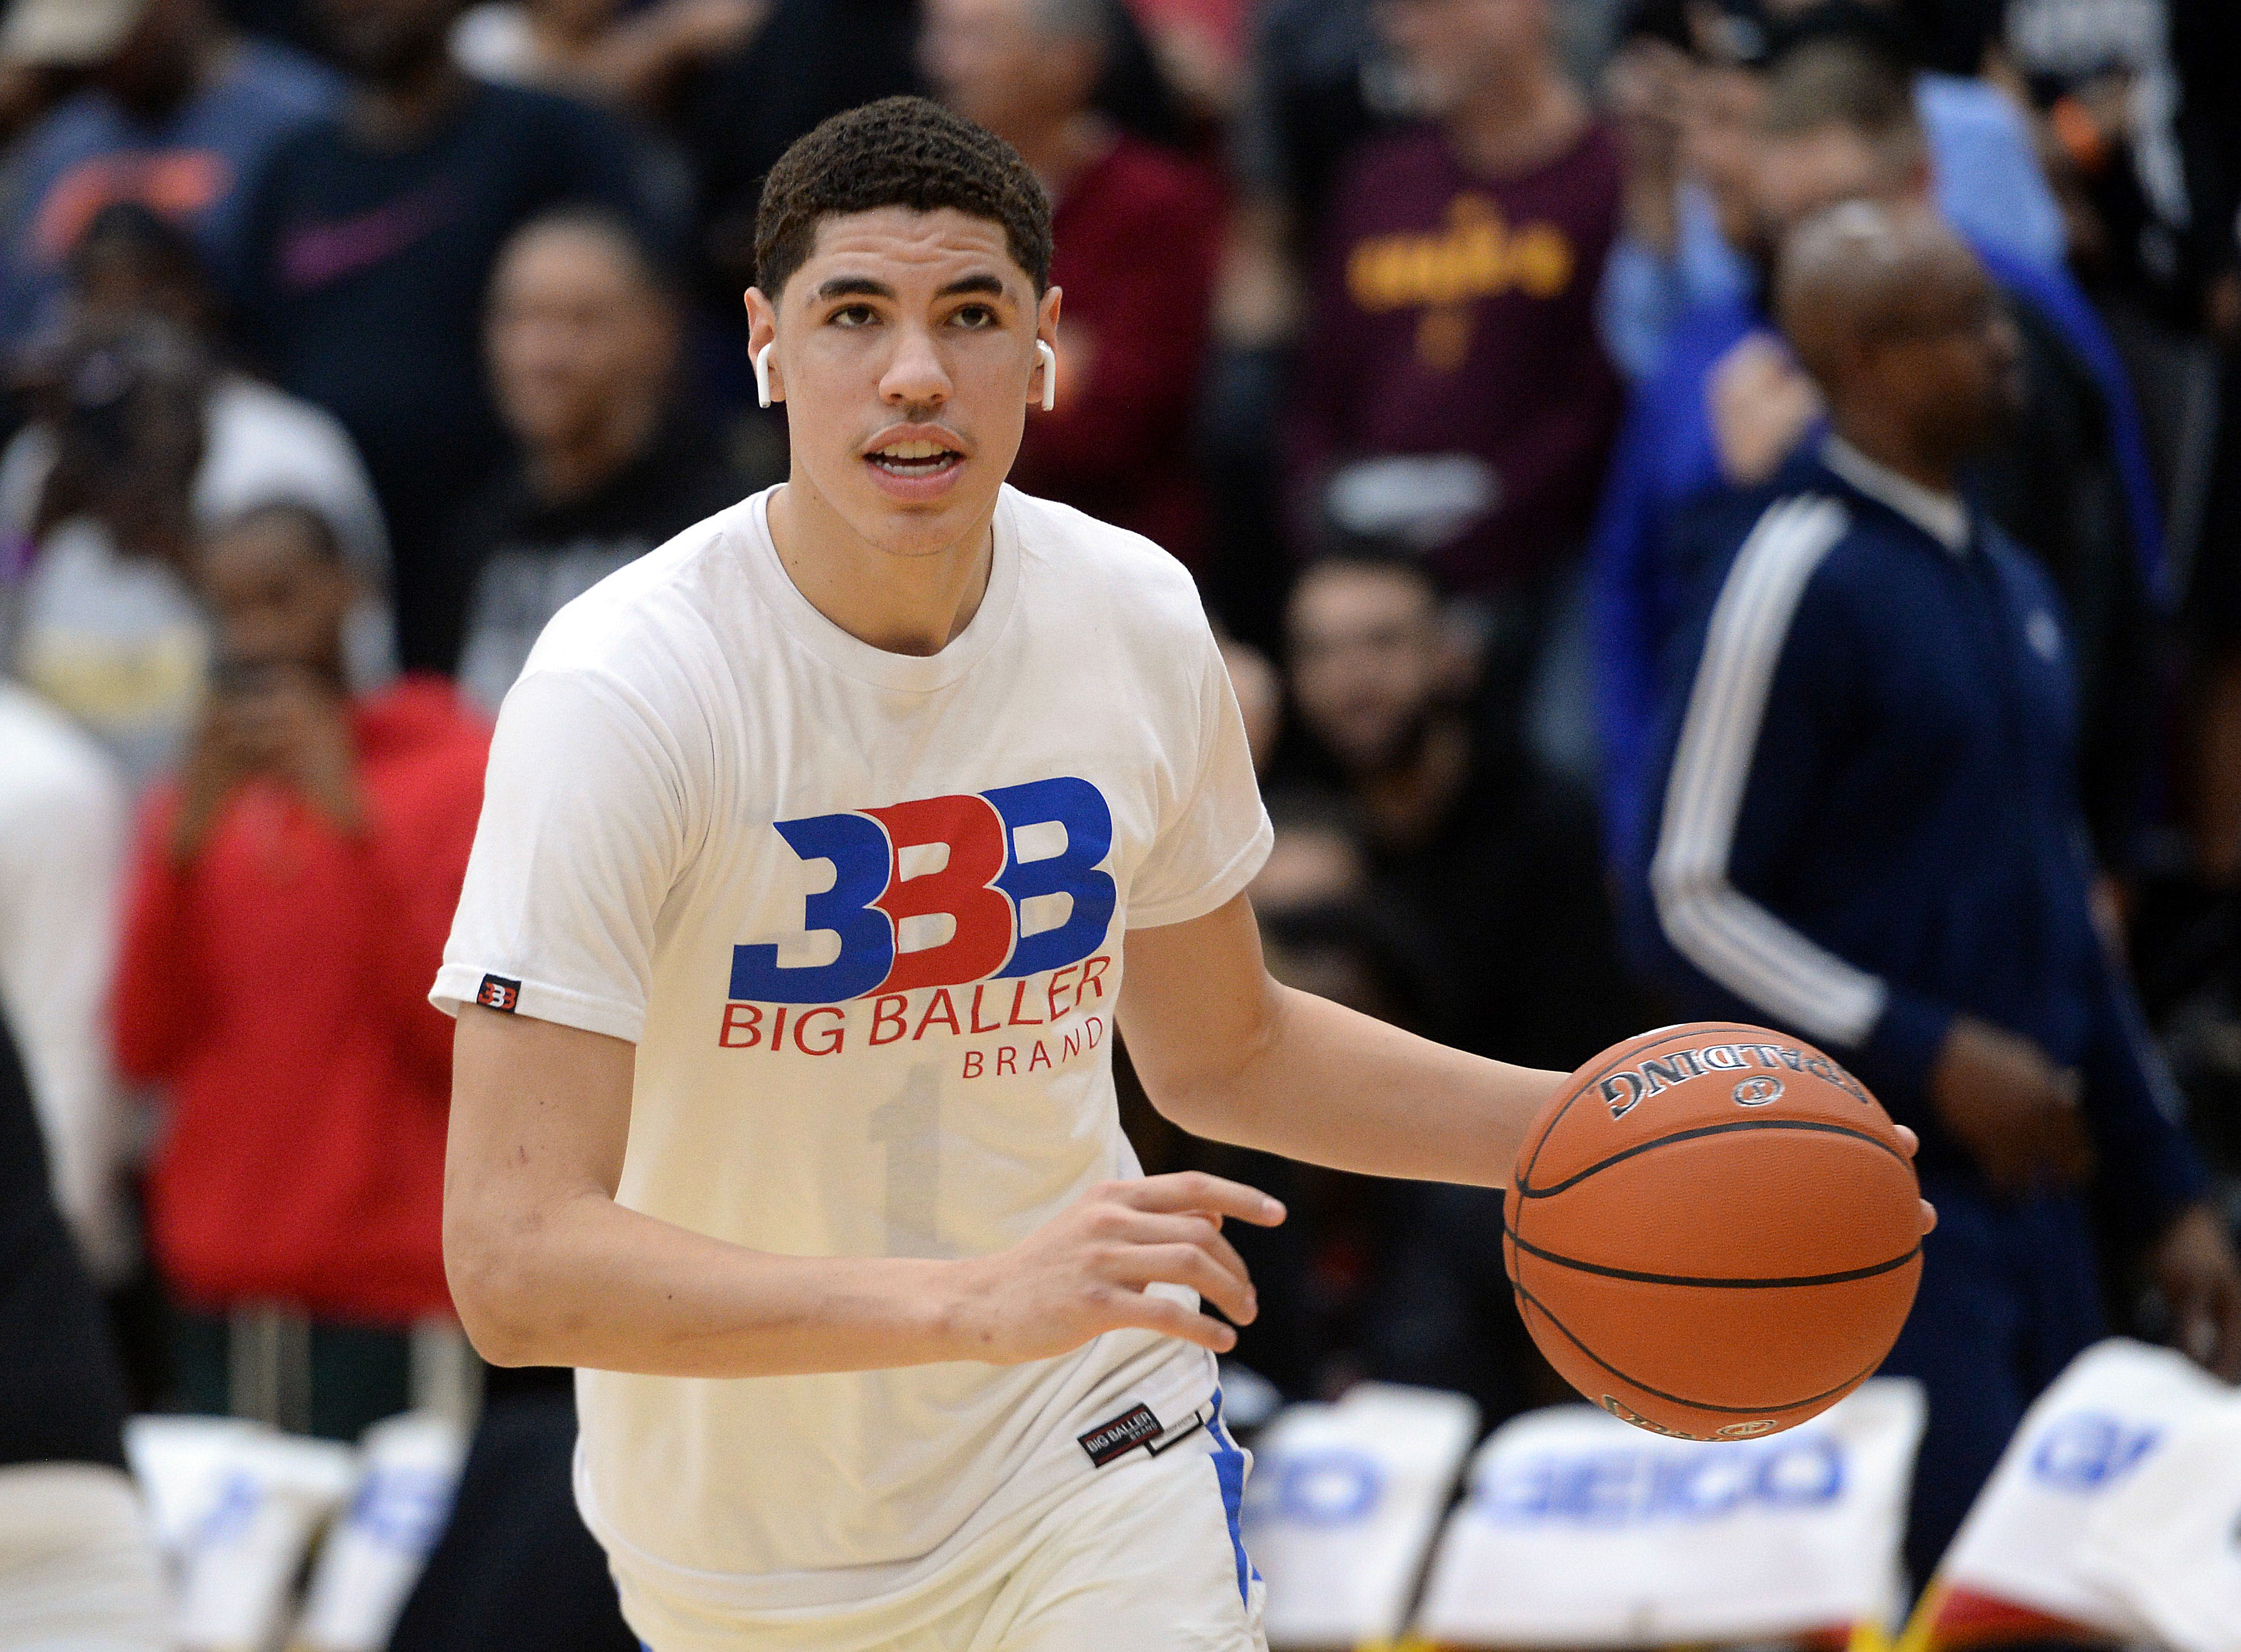 LaMelo Ball inks contract with Hornets